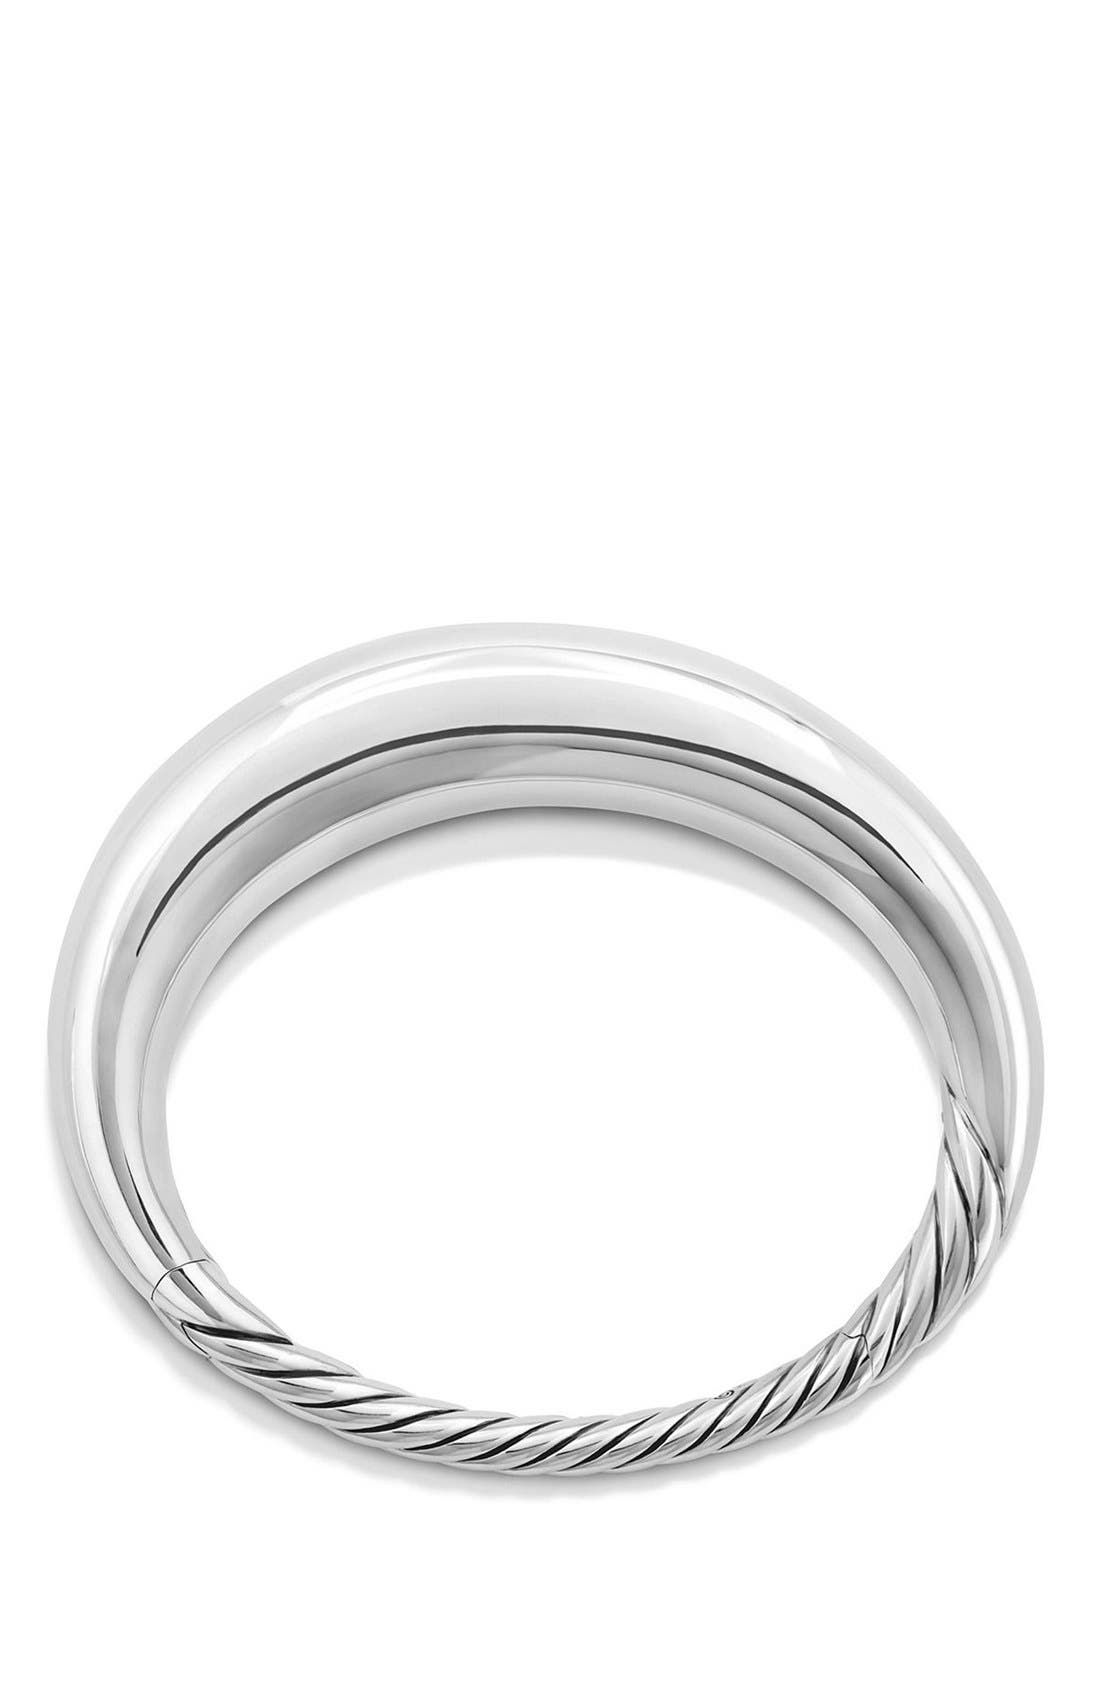 'Pure Form' Large Sterling Silver Bracelet,                             Alternate thumbnail 2, color,                             SILVER